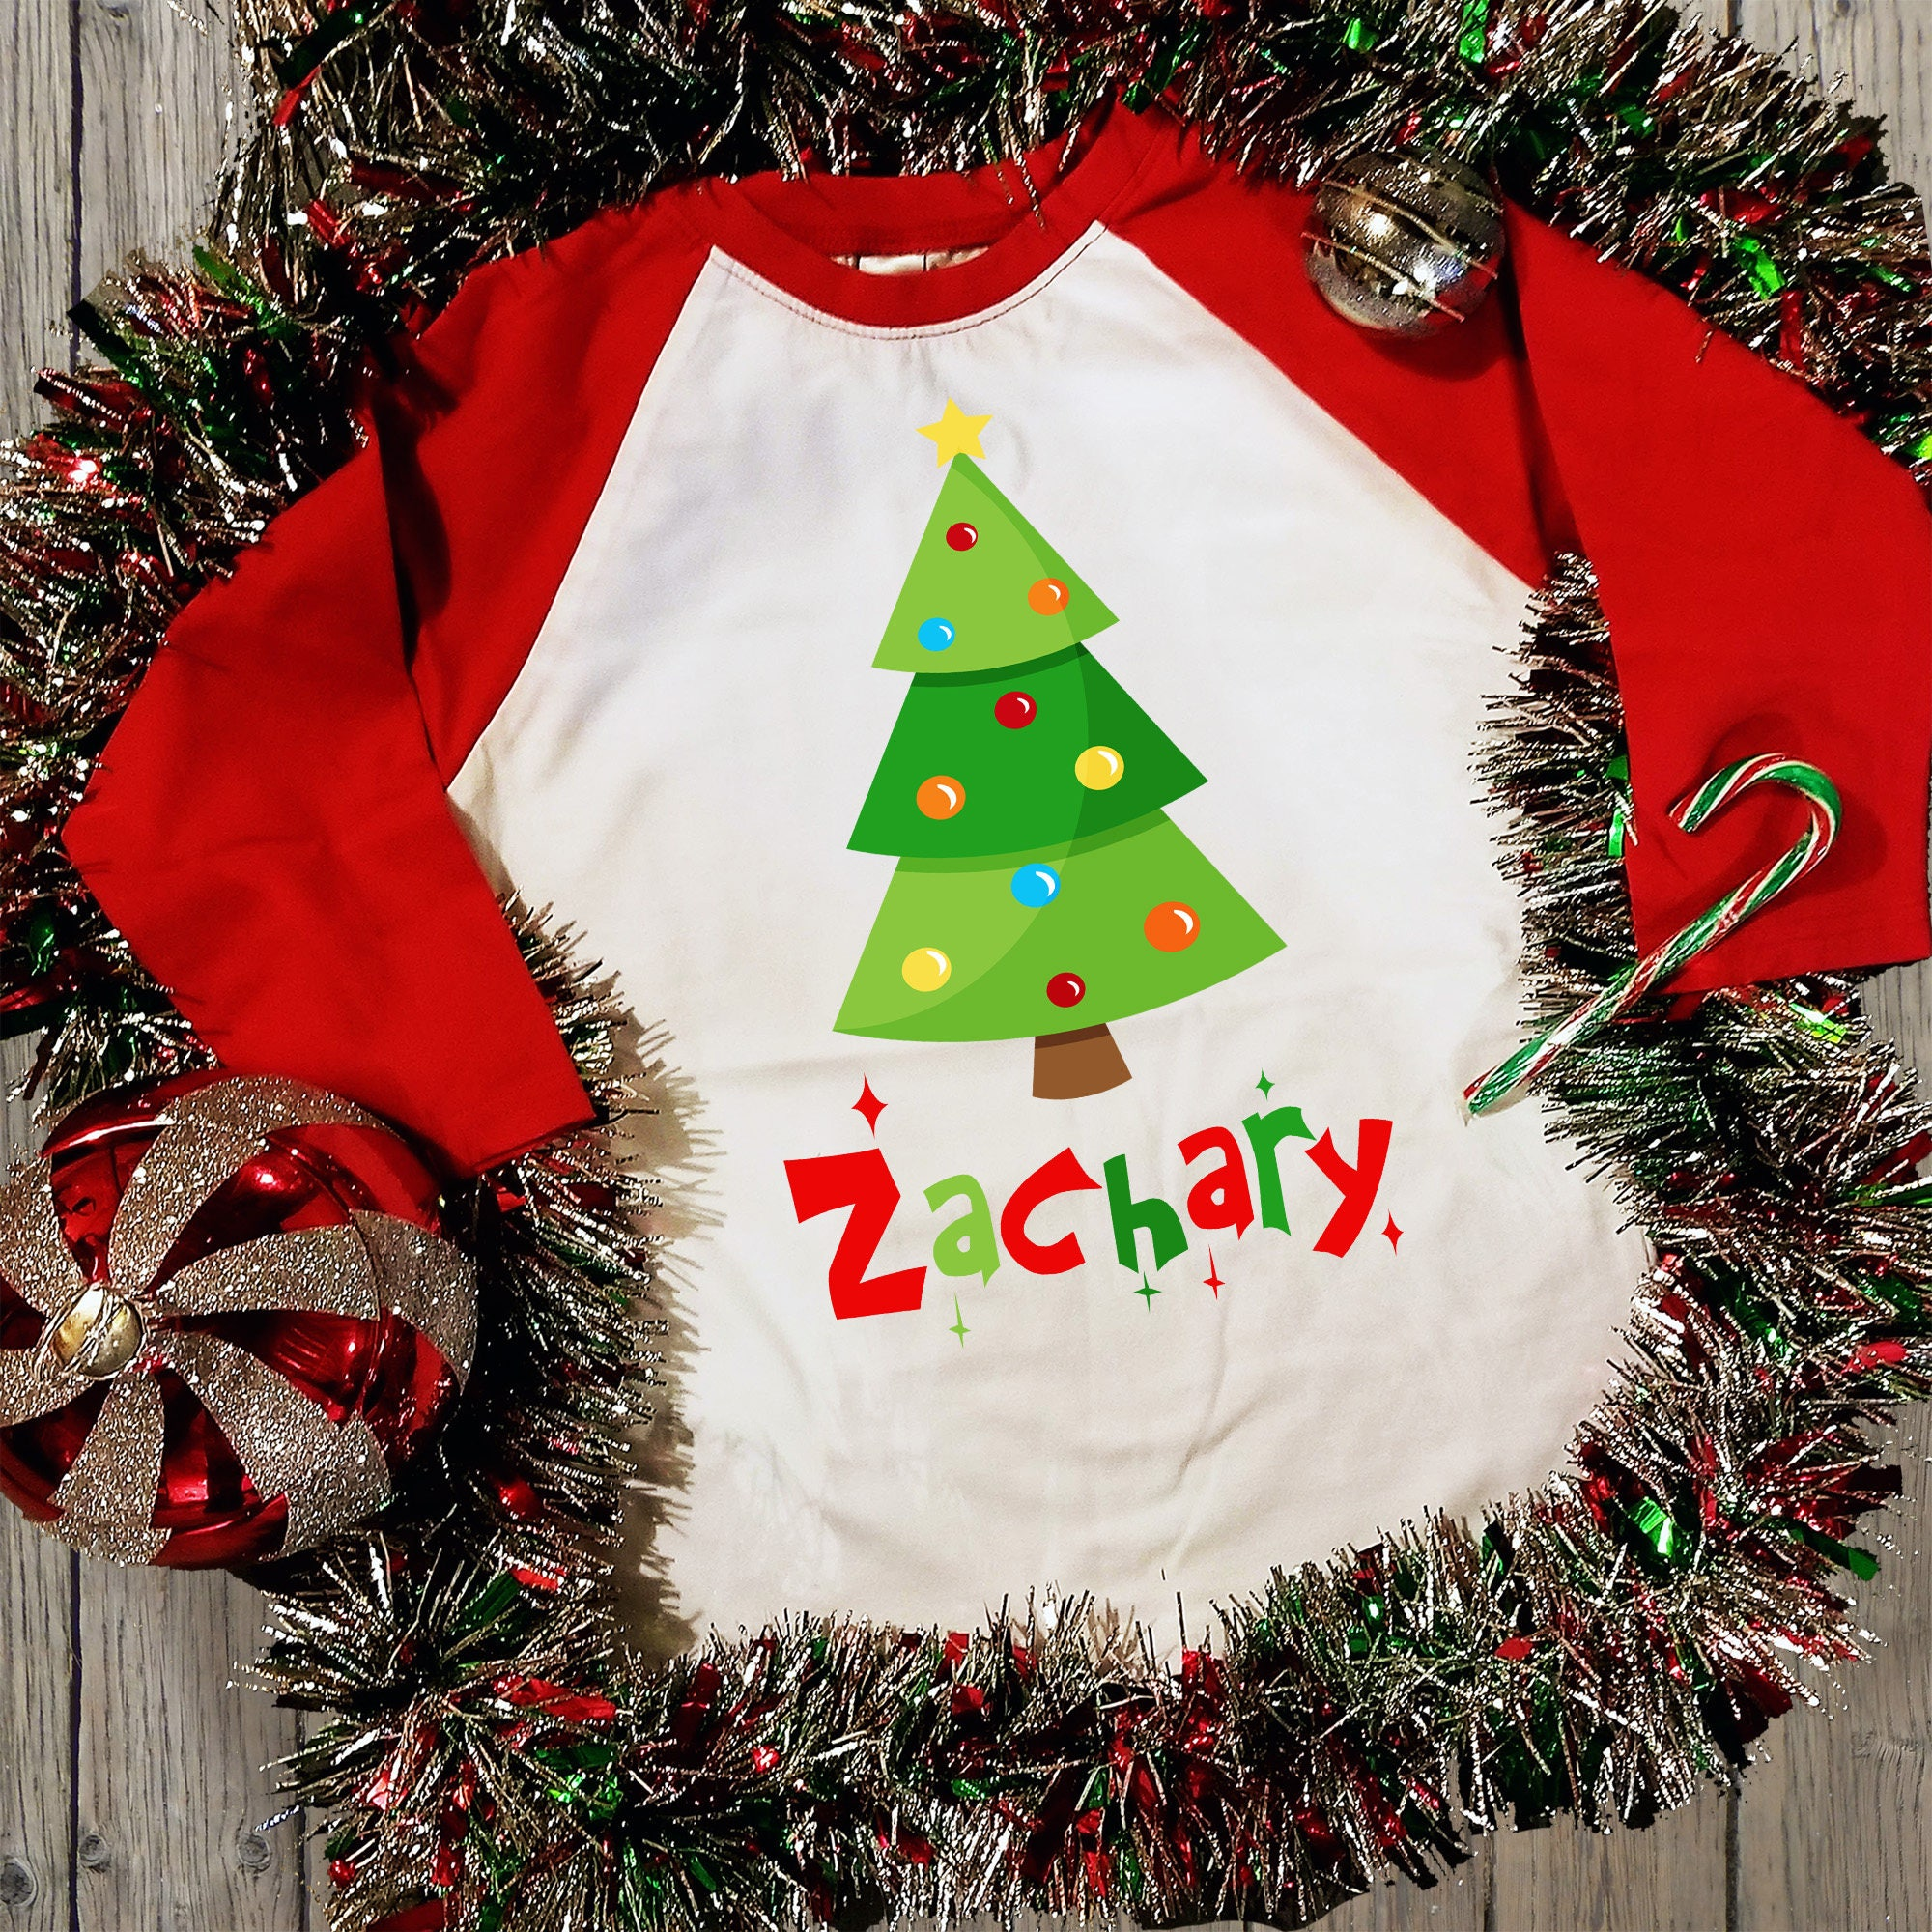 christmas tree raglan shirt personalized with name christmas decorations theme design holiday clothing xmas celebration shirt boy or girl - Christmas Decorations Names